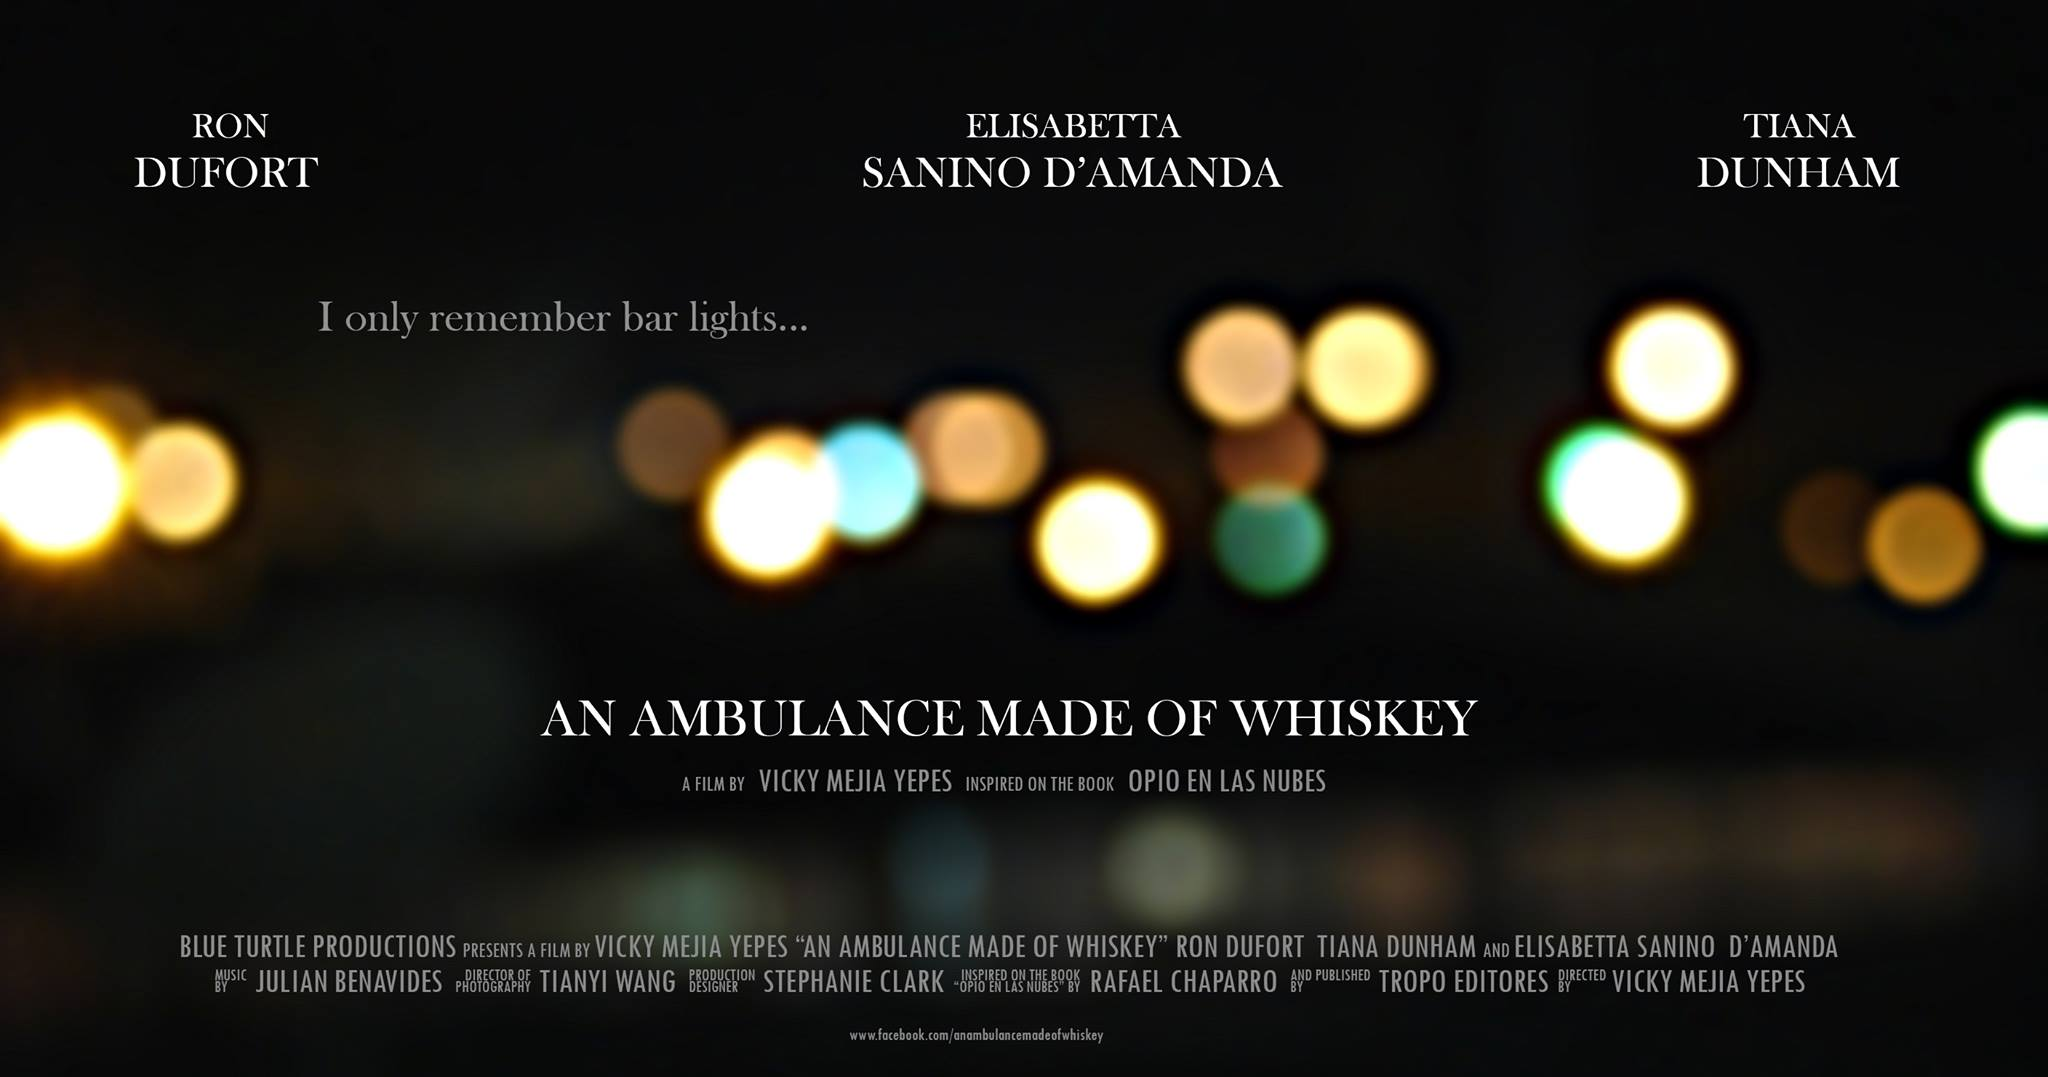 An Ambulance made of Whiskey